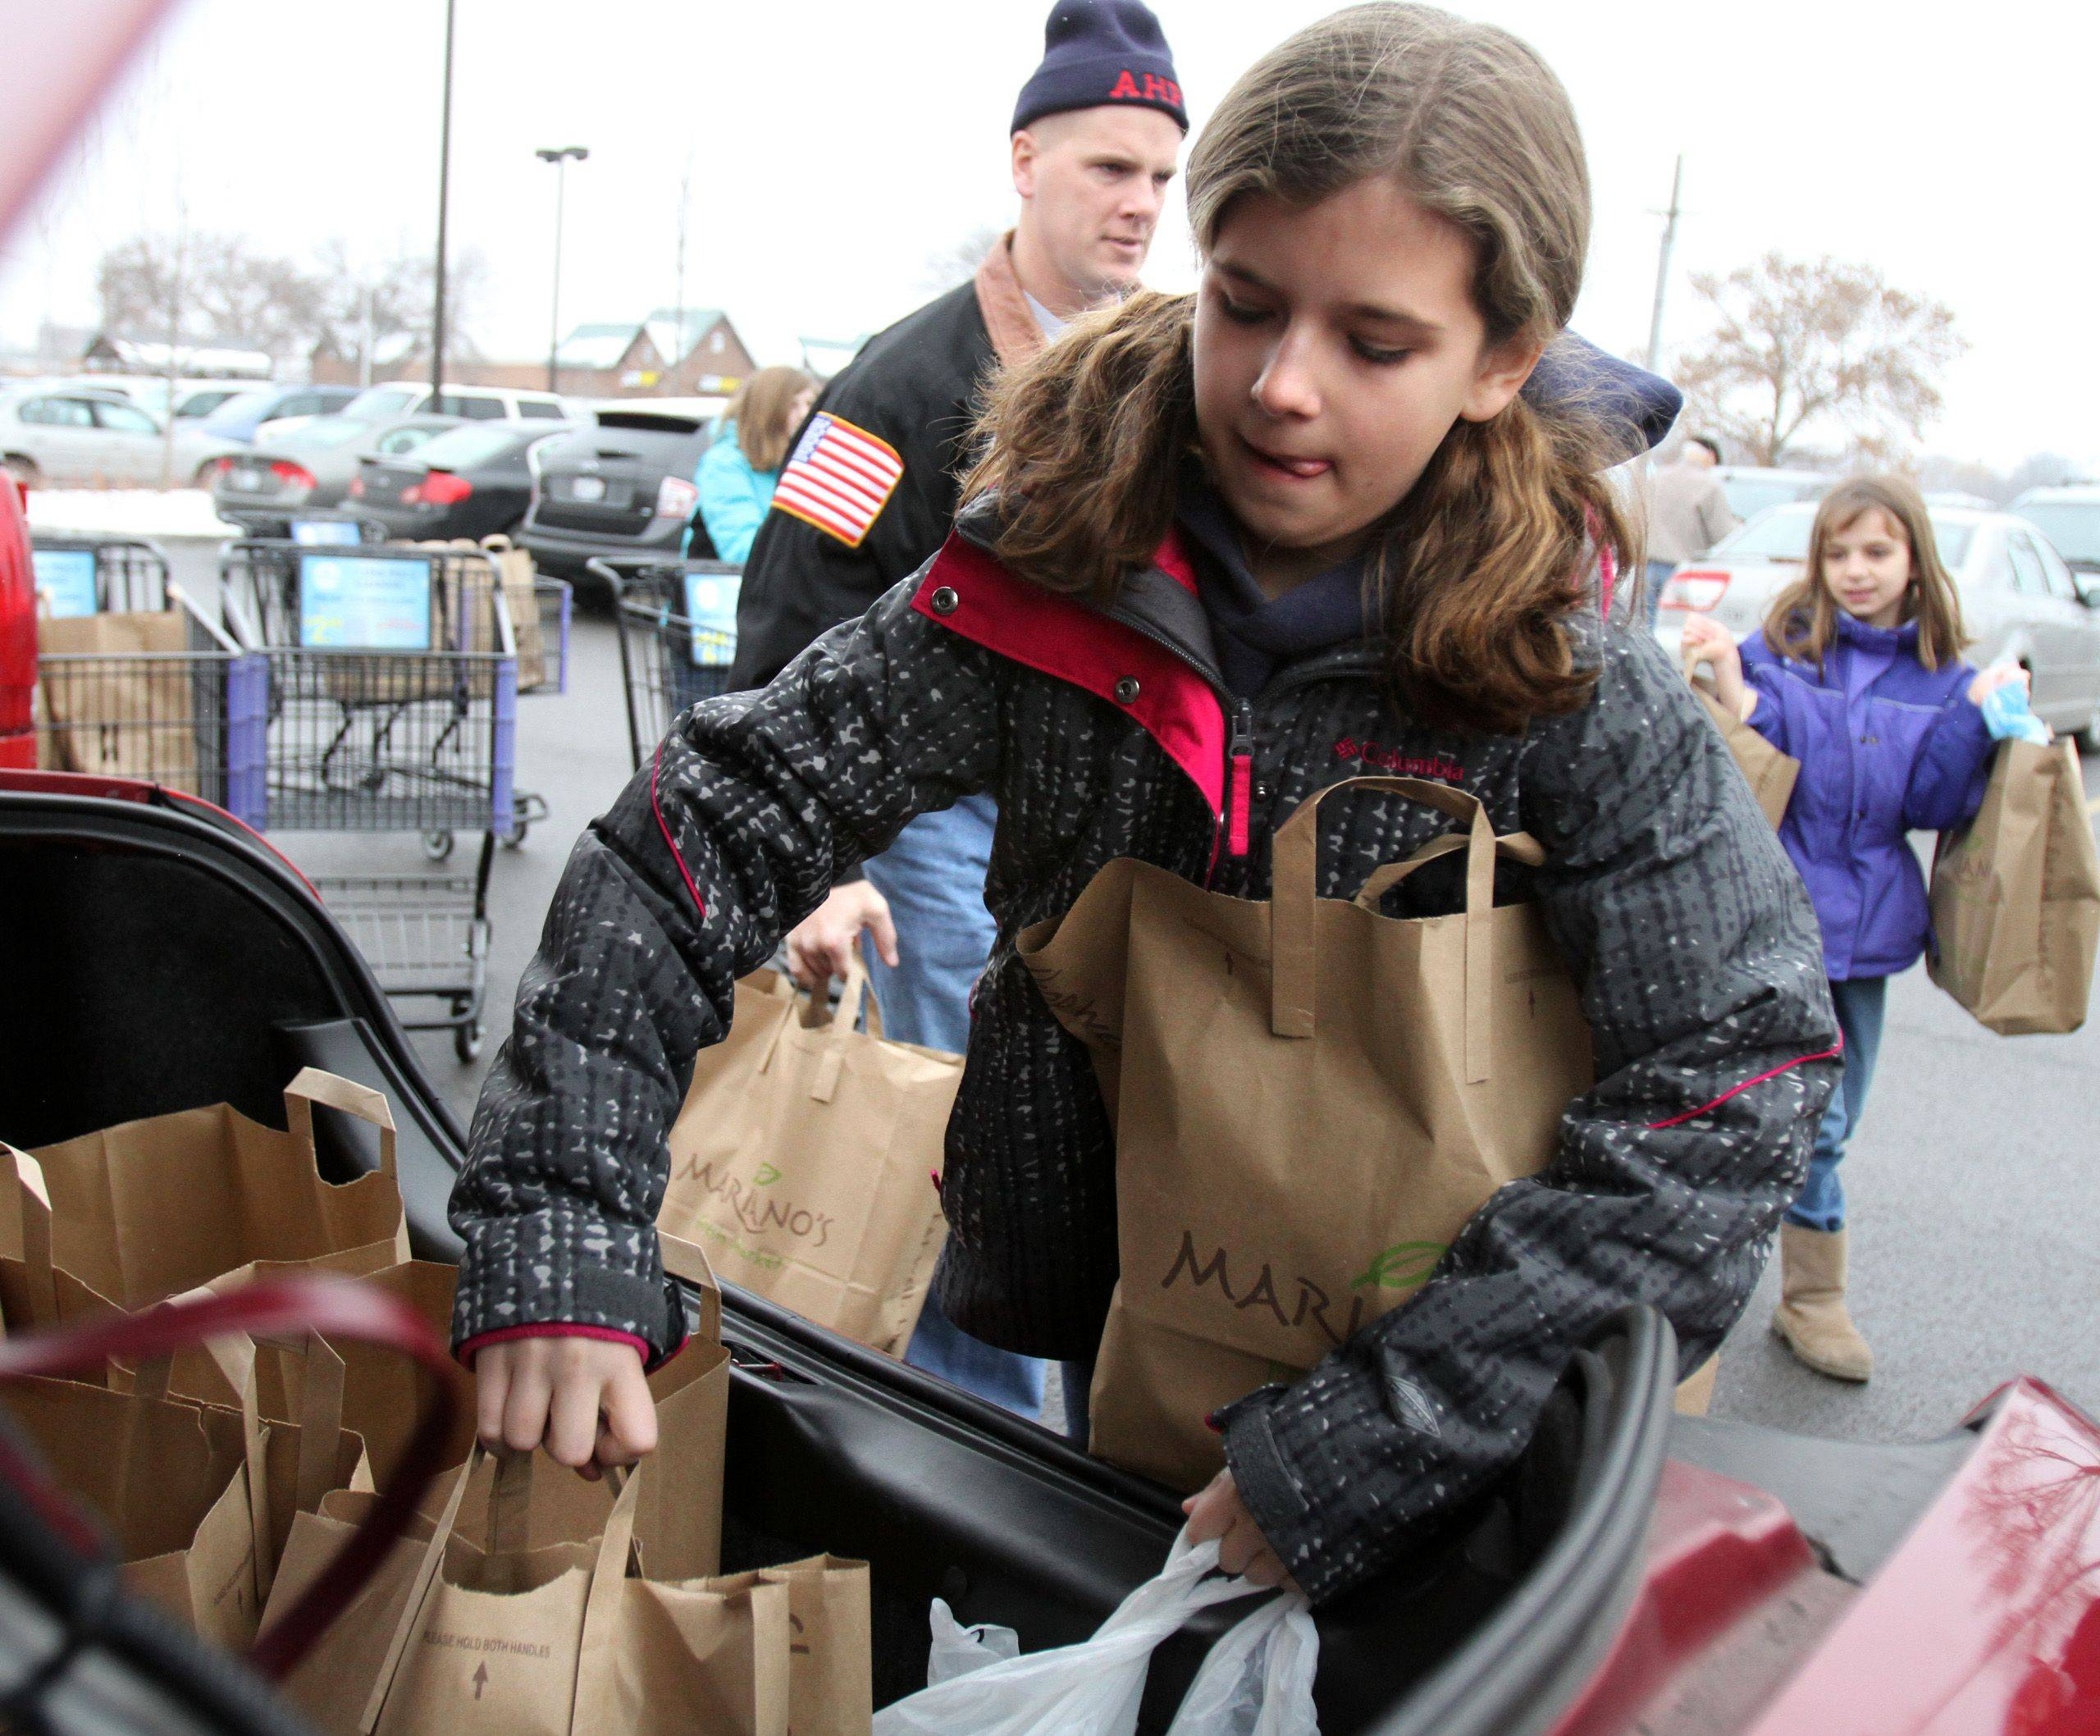 Katrina Kuhn, 11, of Arlington Heights, helps the Arlington Heights Fire Department, members of Local 3105, and fire department administration load large bags filled with complete holiday meals Christmas Eve for needy families.